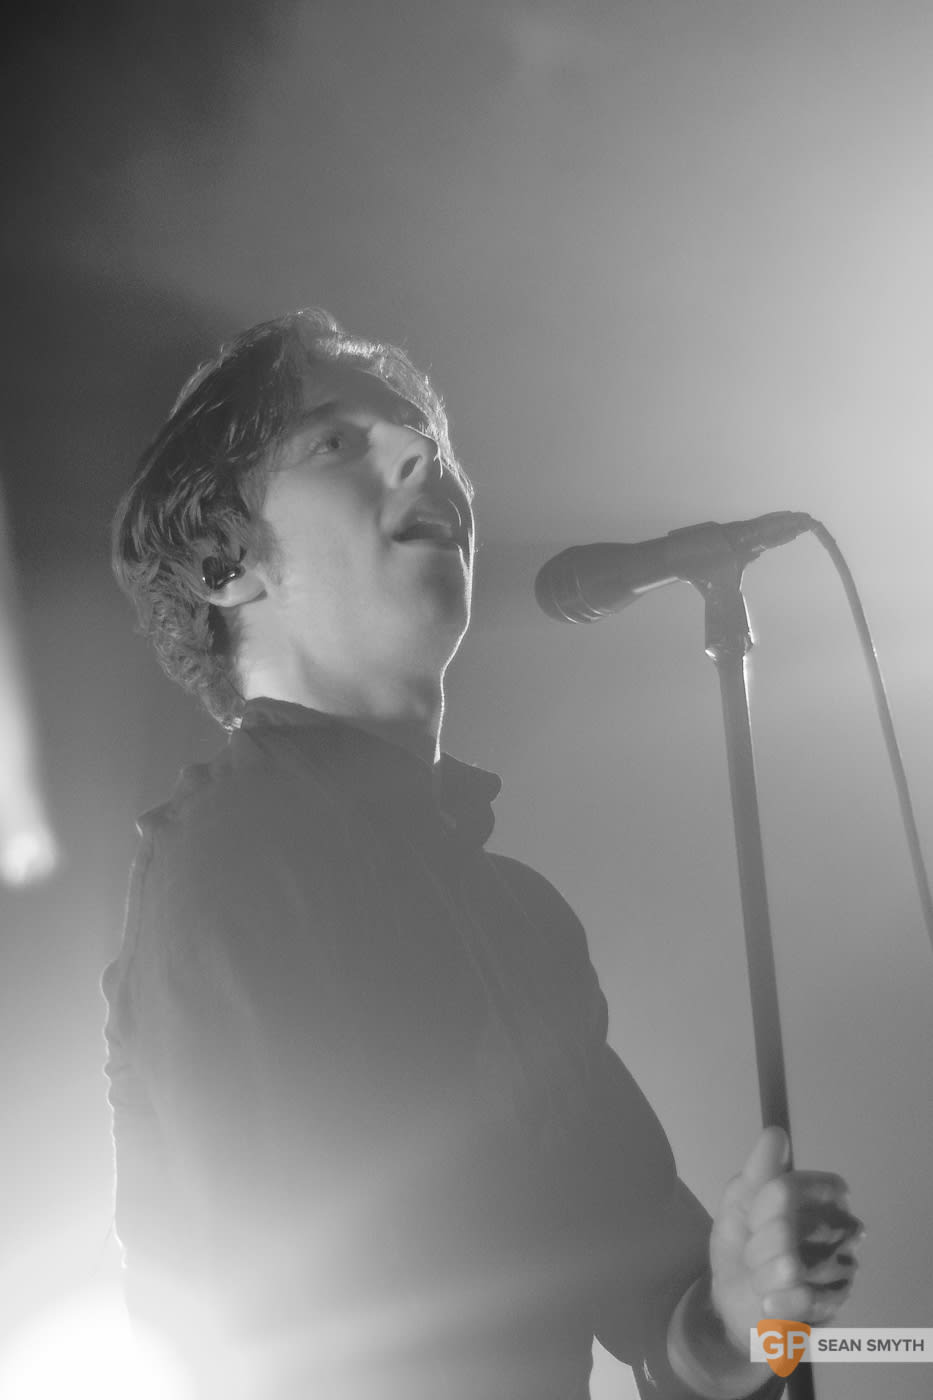 catfish-and-the-bottlemen-at-the-olympia-theatre-by-sean-smyth-20-11-16-7-of-27